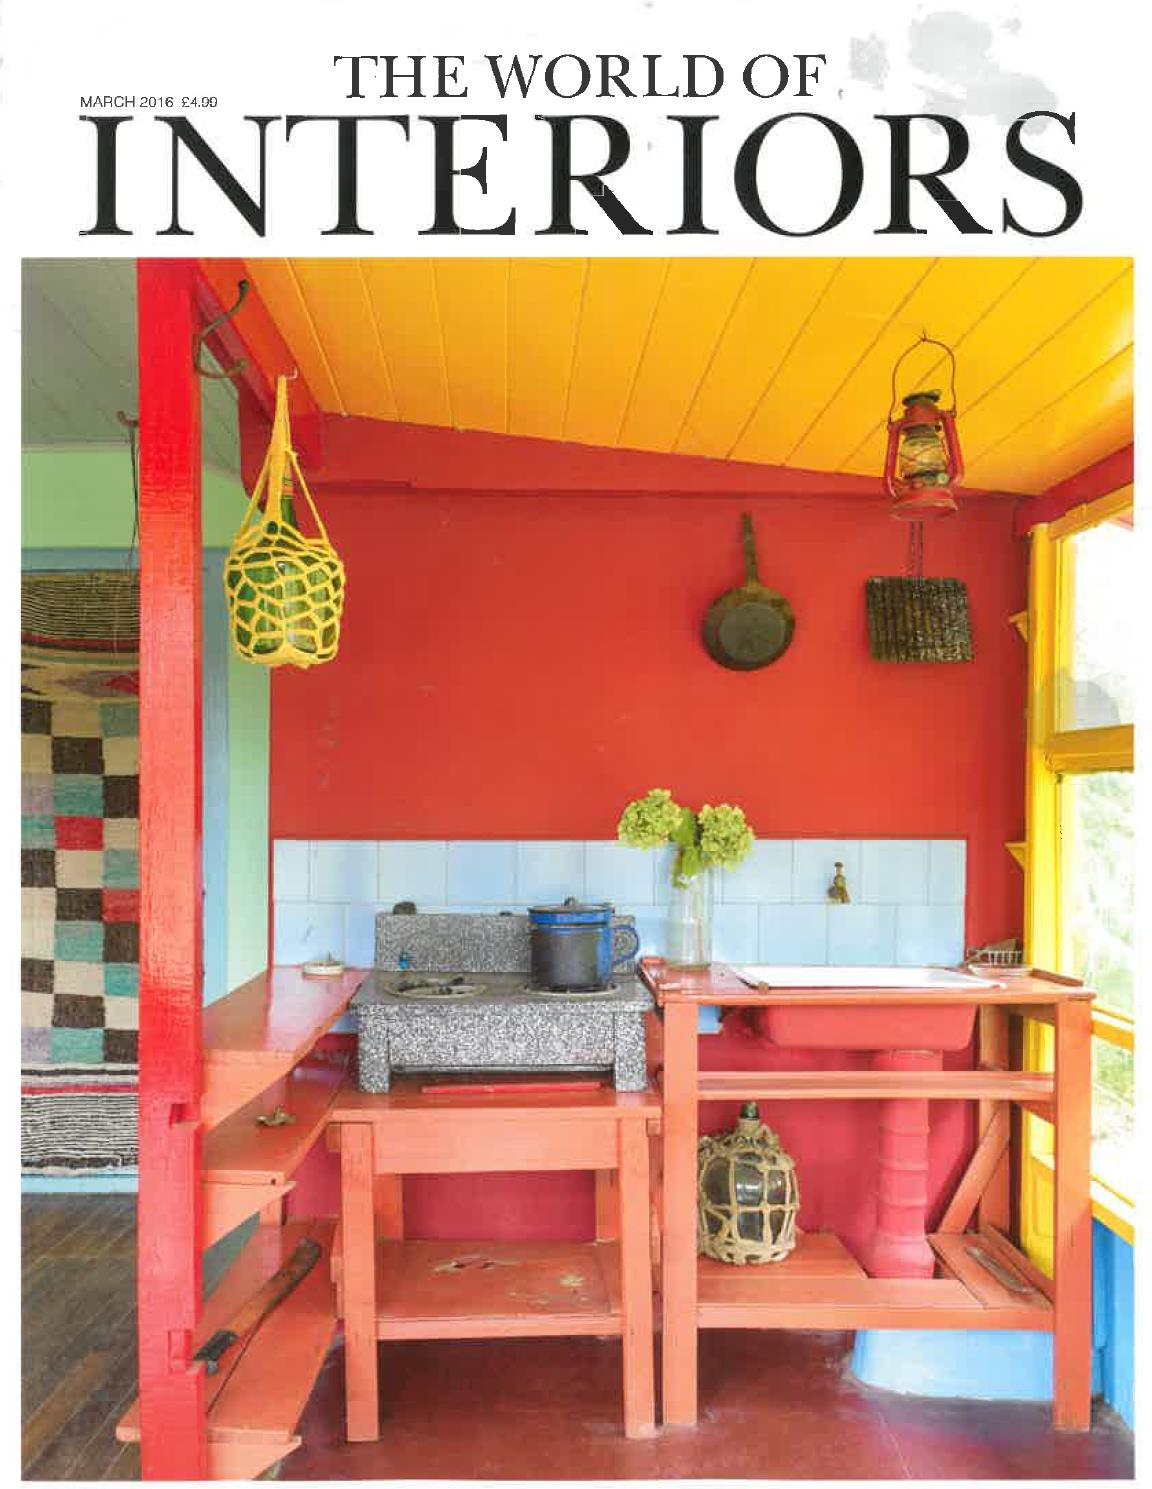 World of Interiors features my 'Moroccan Tiles' throws